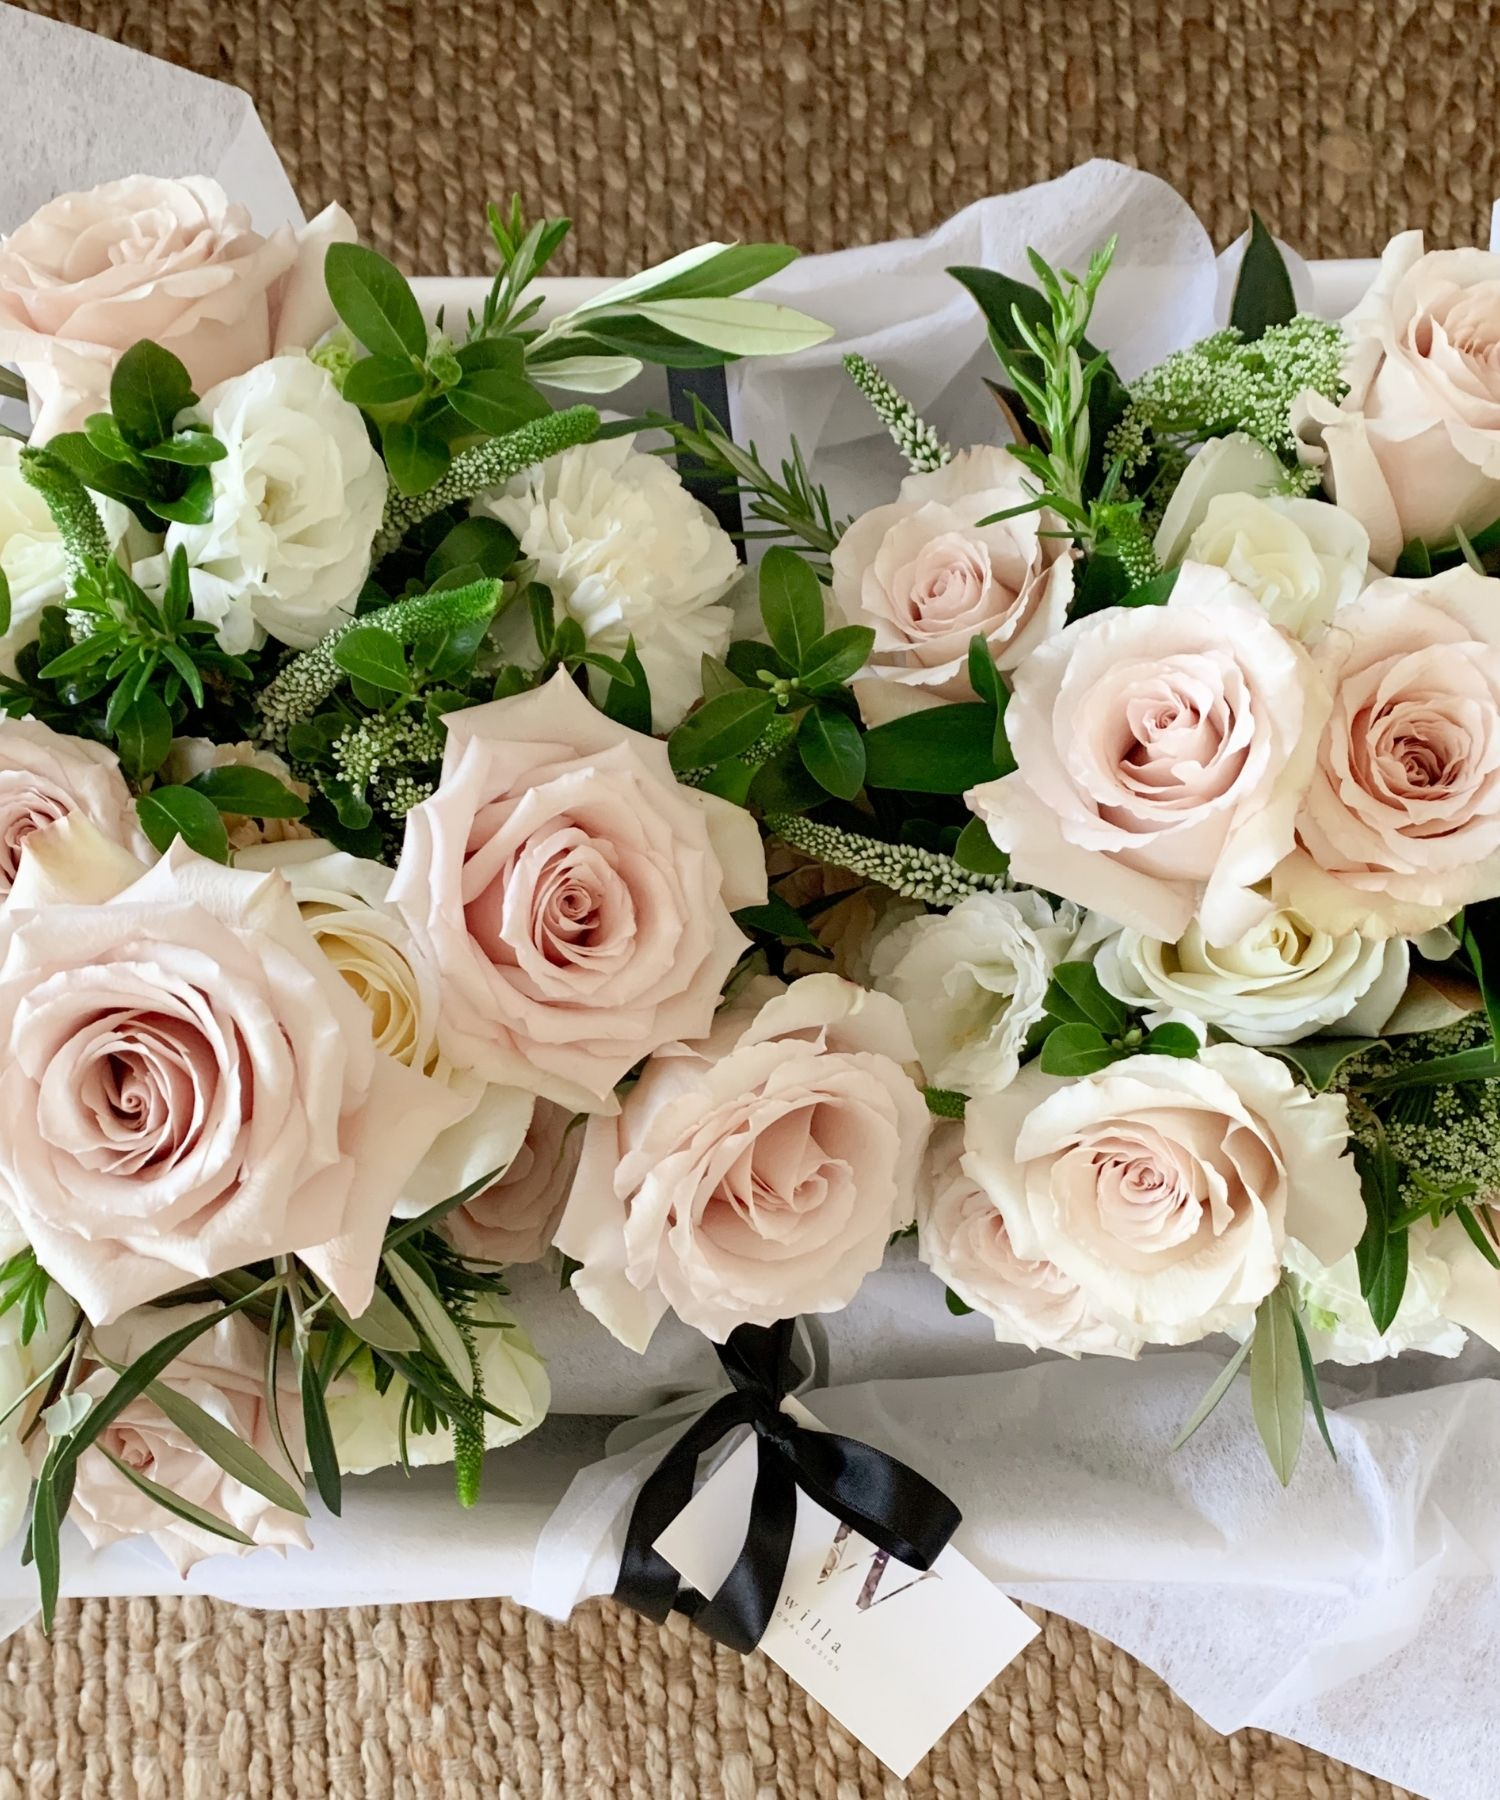 bouquets for delivery